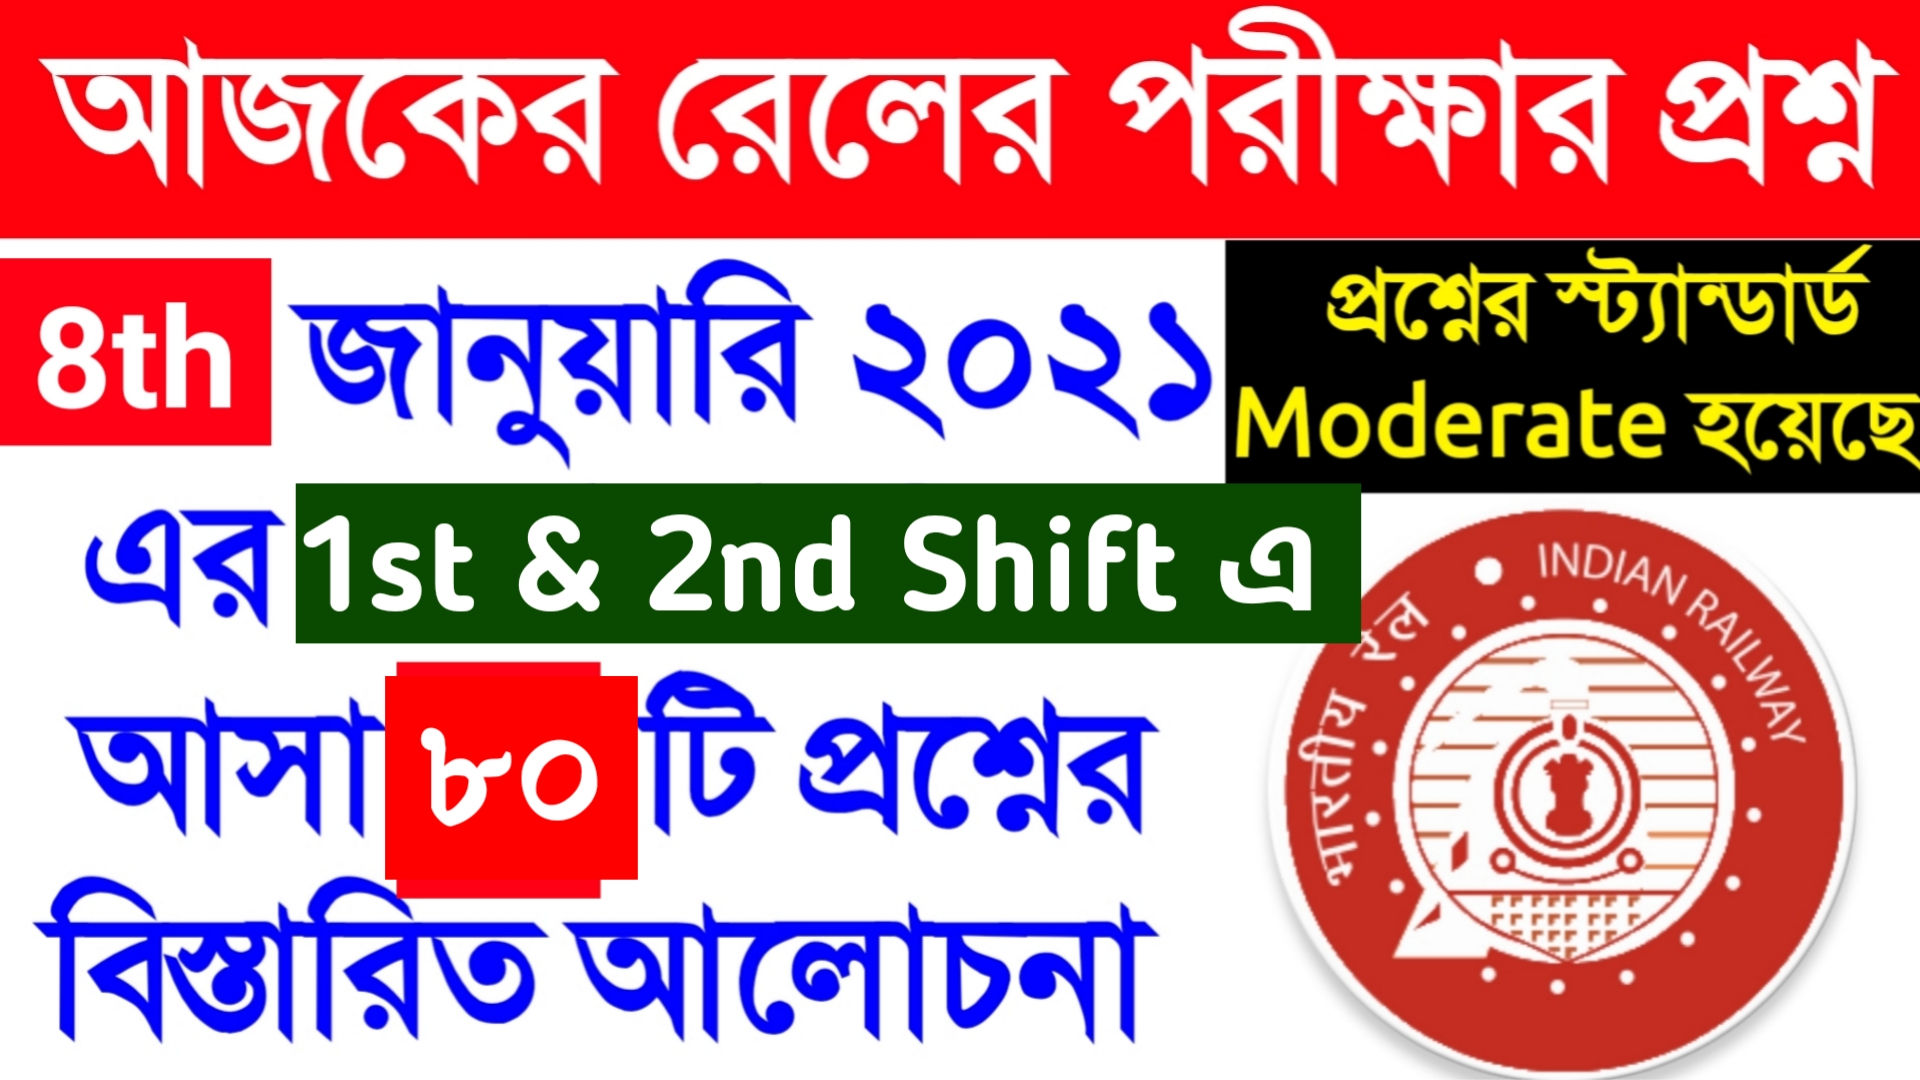 RRB NTPC 8TH JANUARY 2021 1ST & 2ND SHIFT QUESTION PAPER PDF IN BENGALI